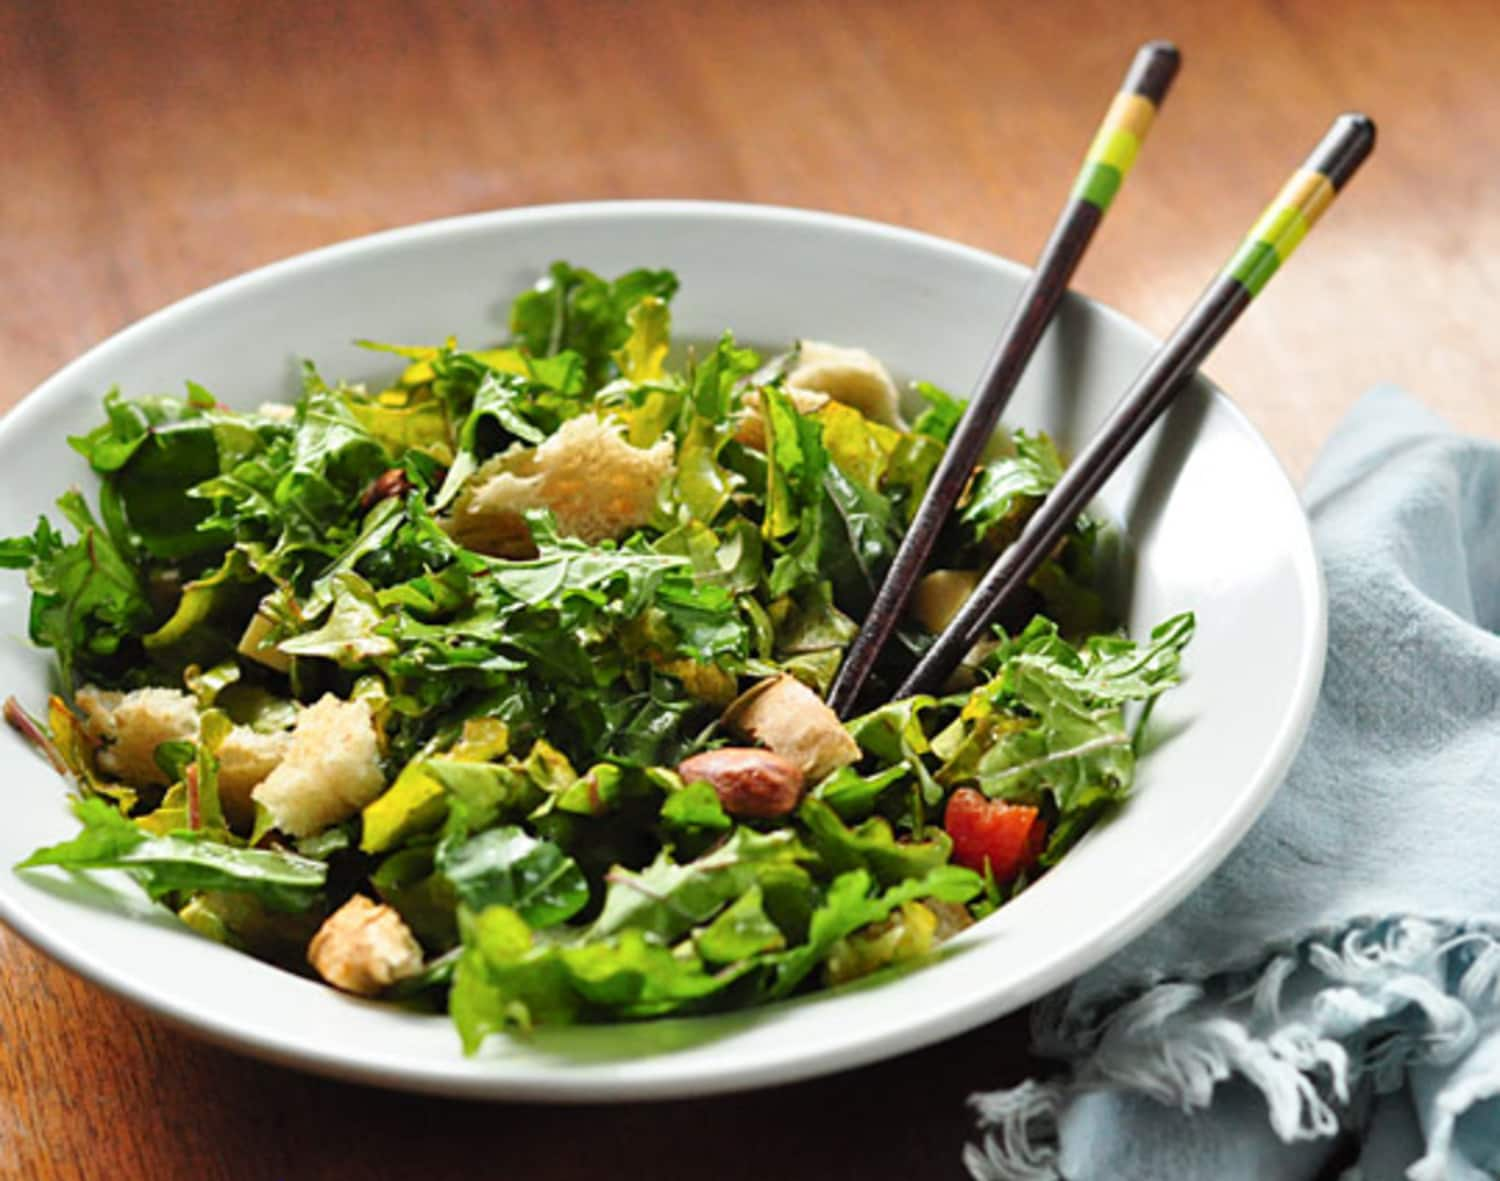 The Best Way to Eat a Salad? With a Pair of Chopsticks